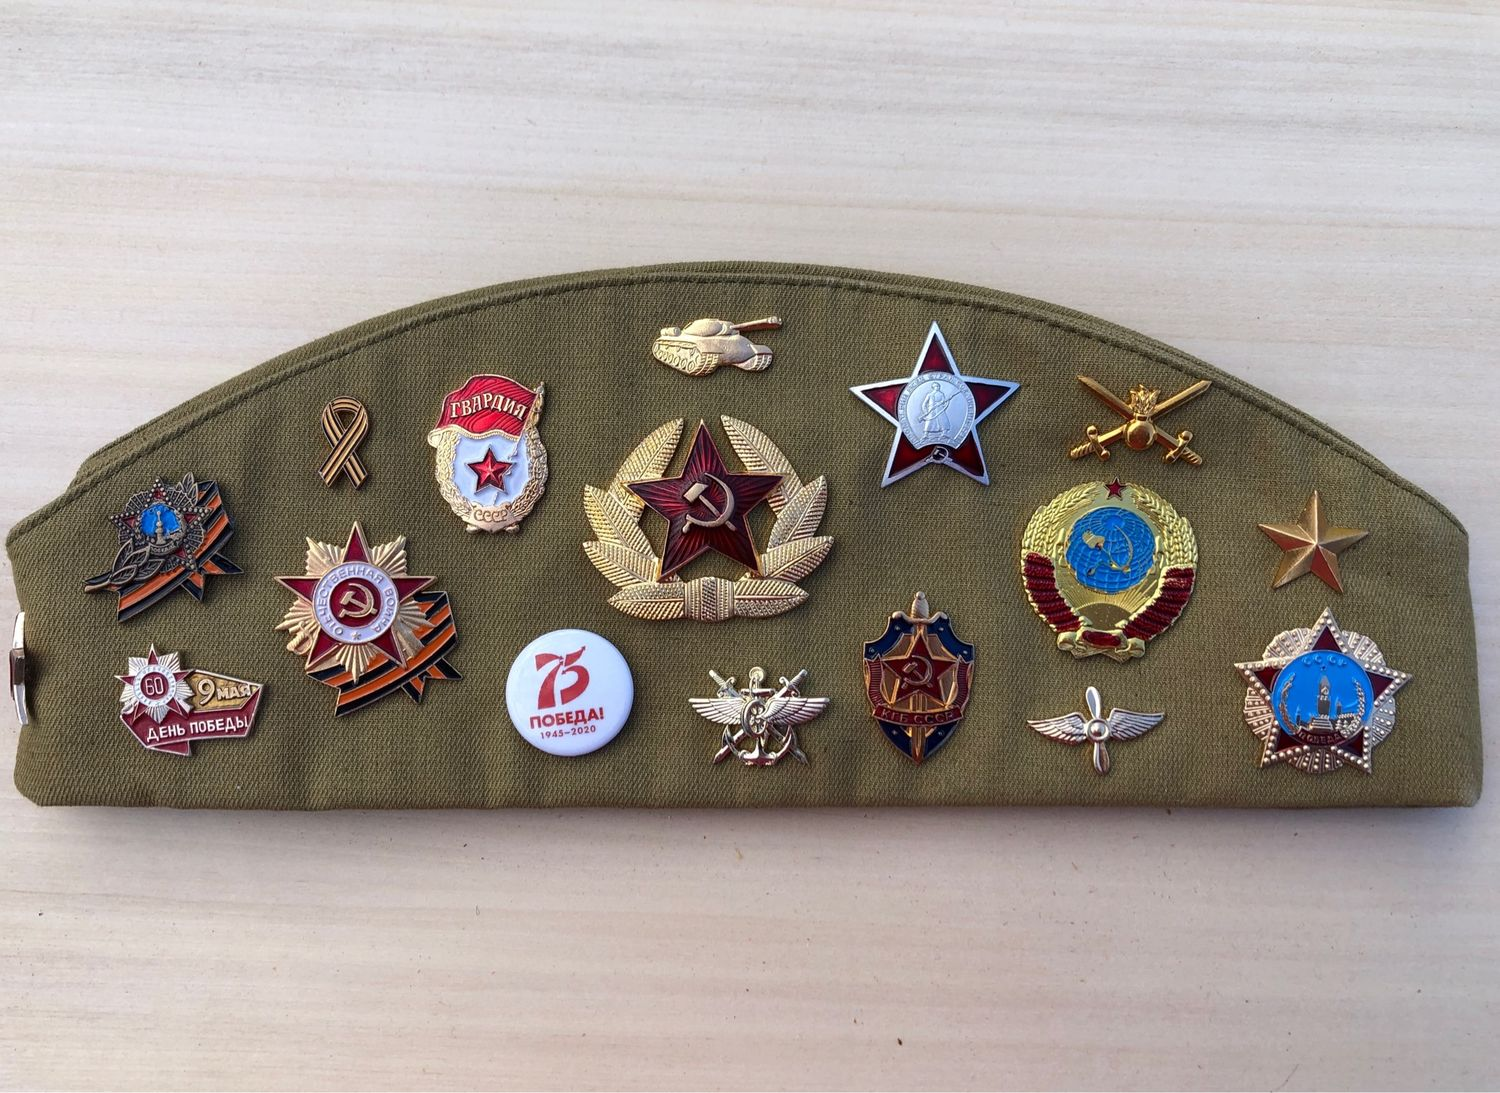 A souvenir soldier's cap with badges of the SOVIET, Pilot, Moscow,  Фото №1